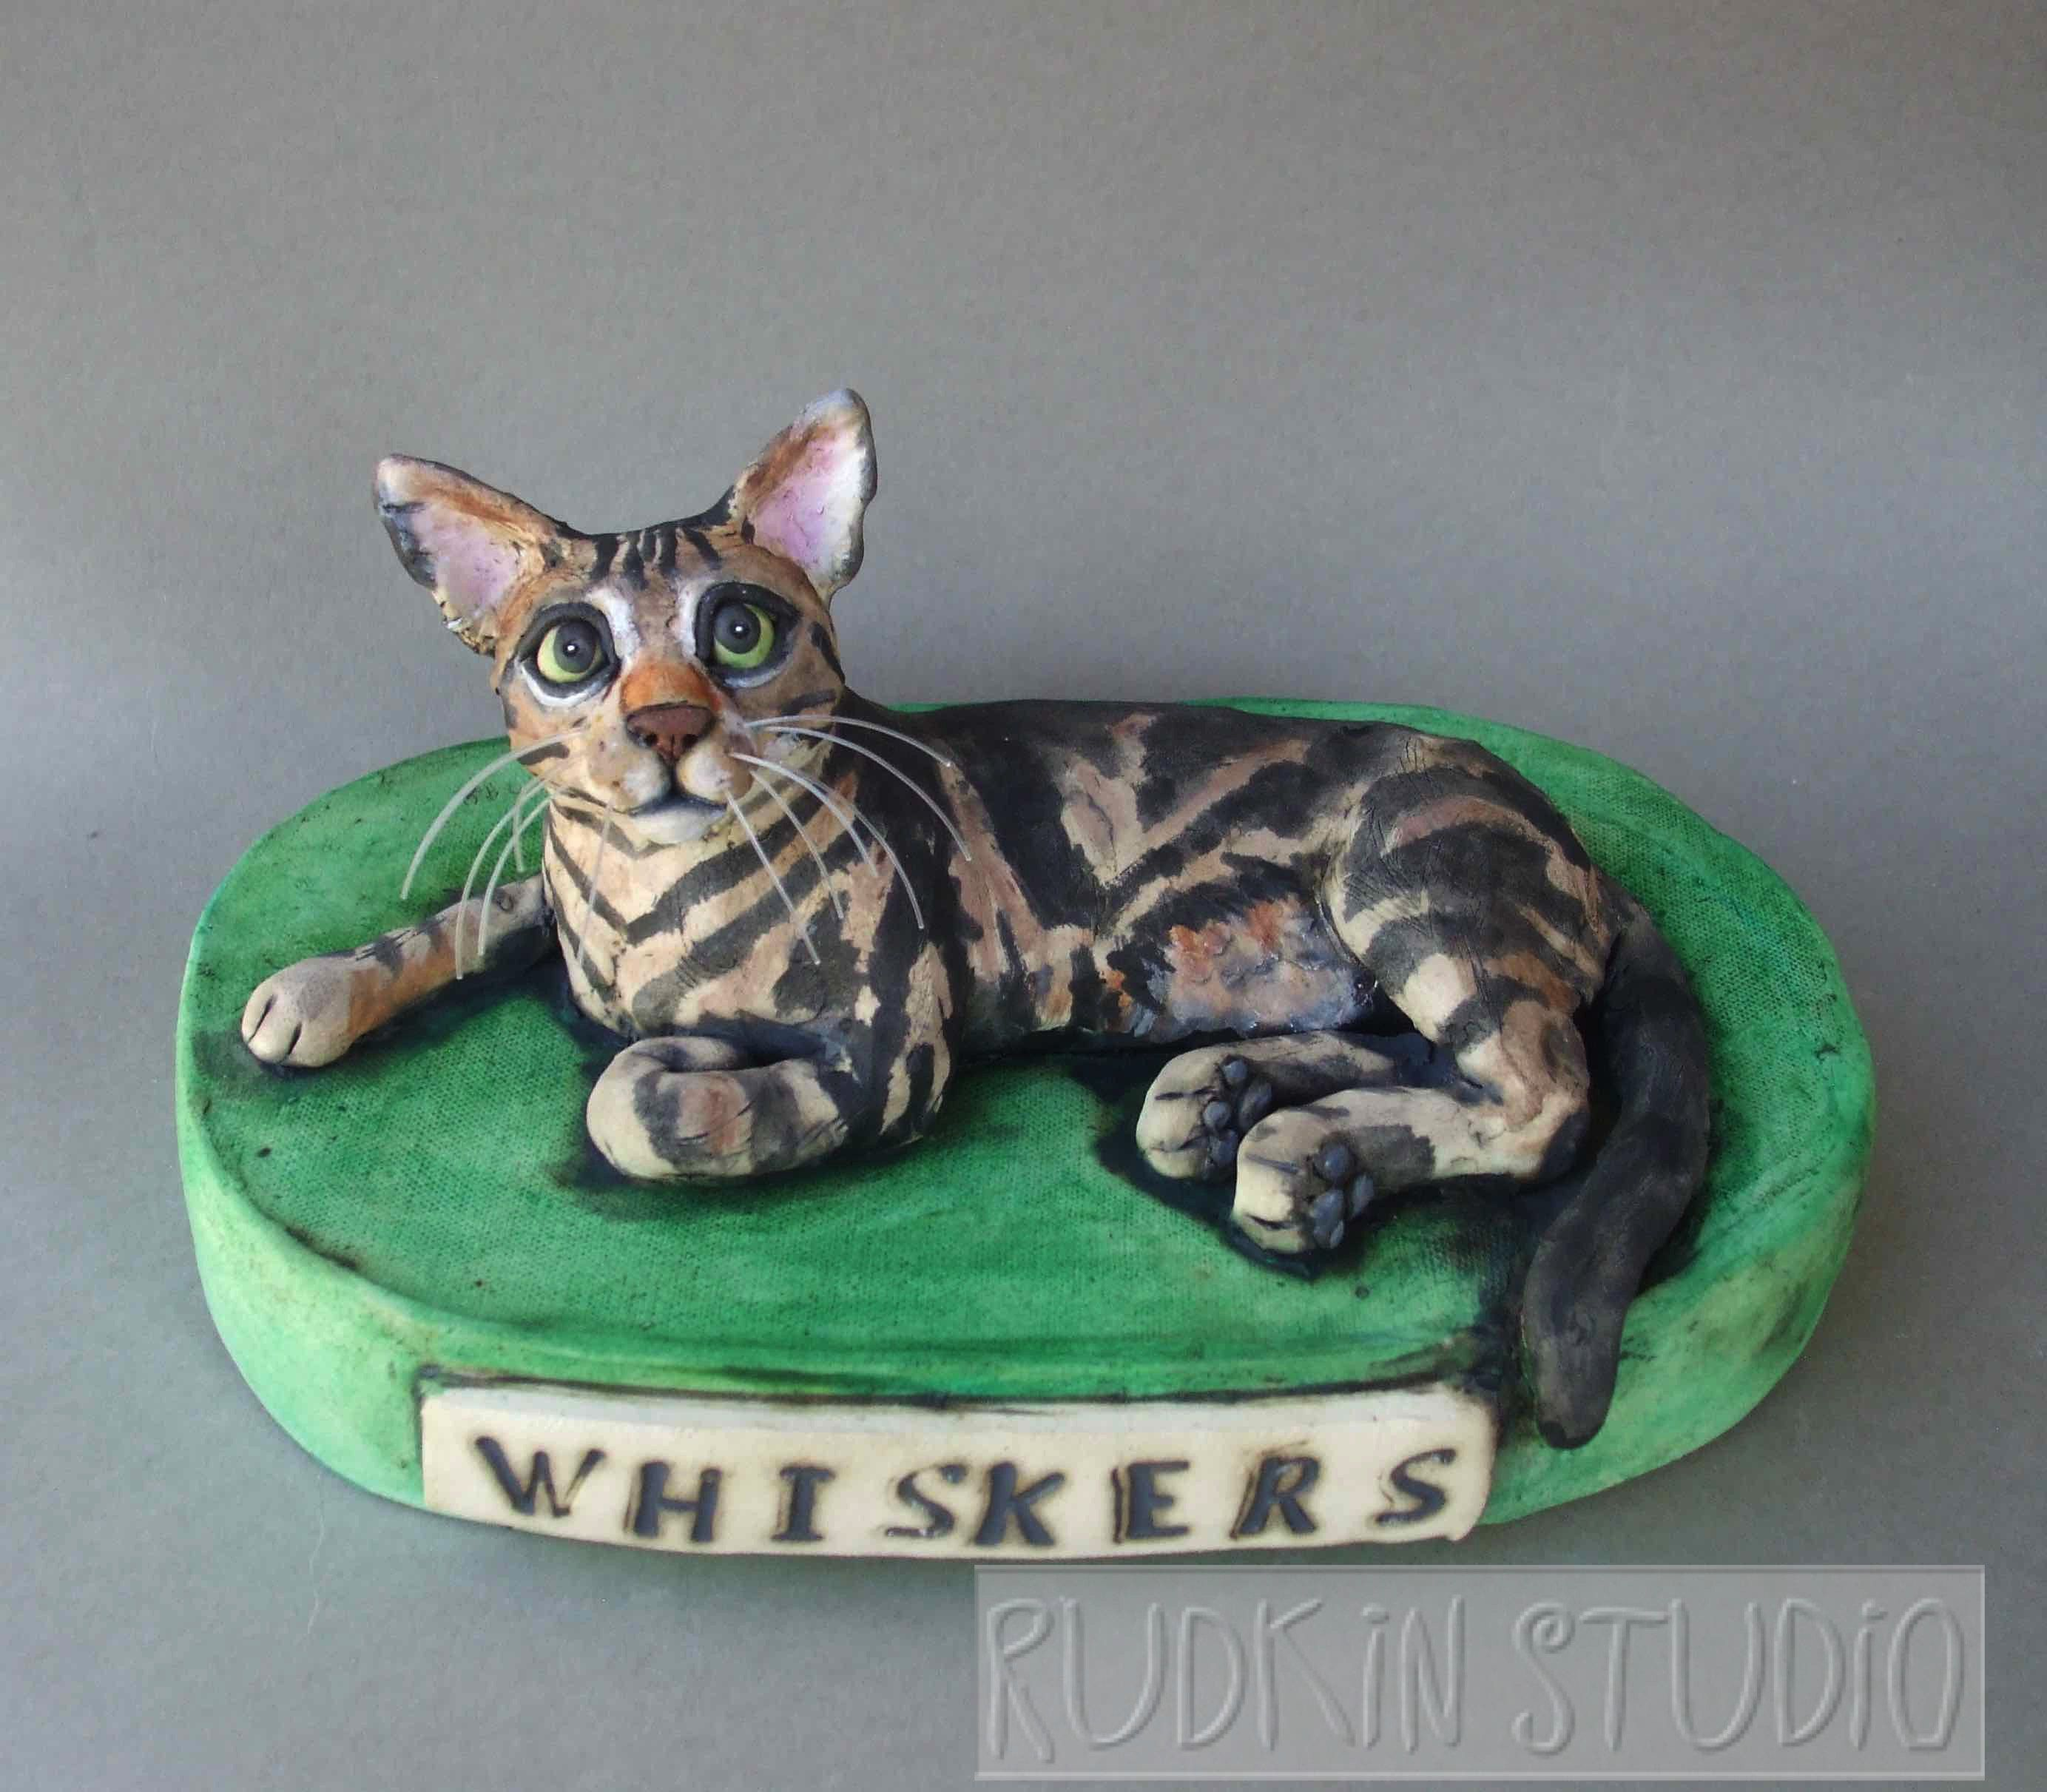 Whiskers the cat custom pet sculpture from Rudkin Studio